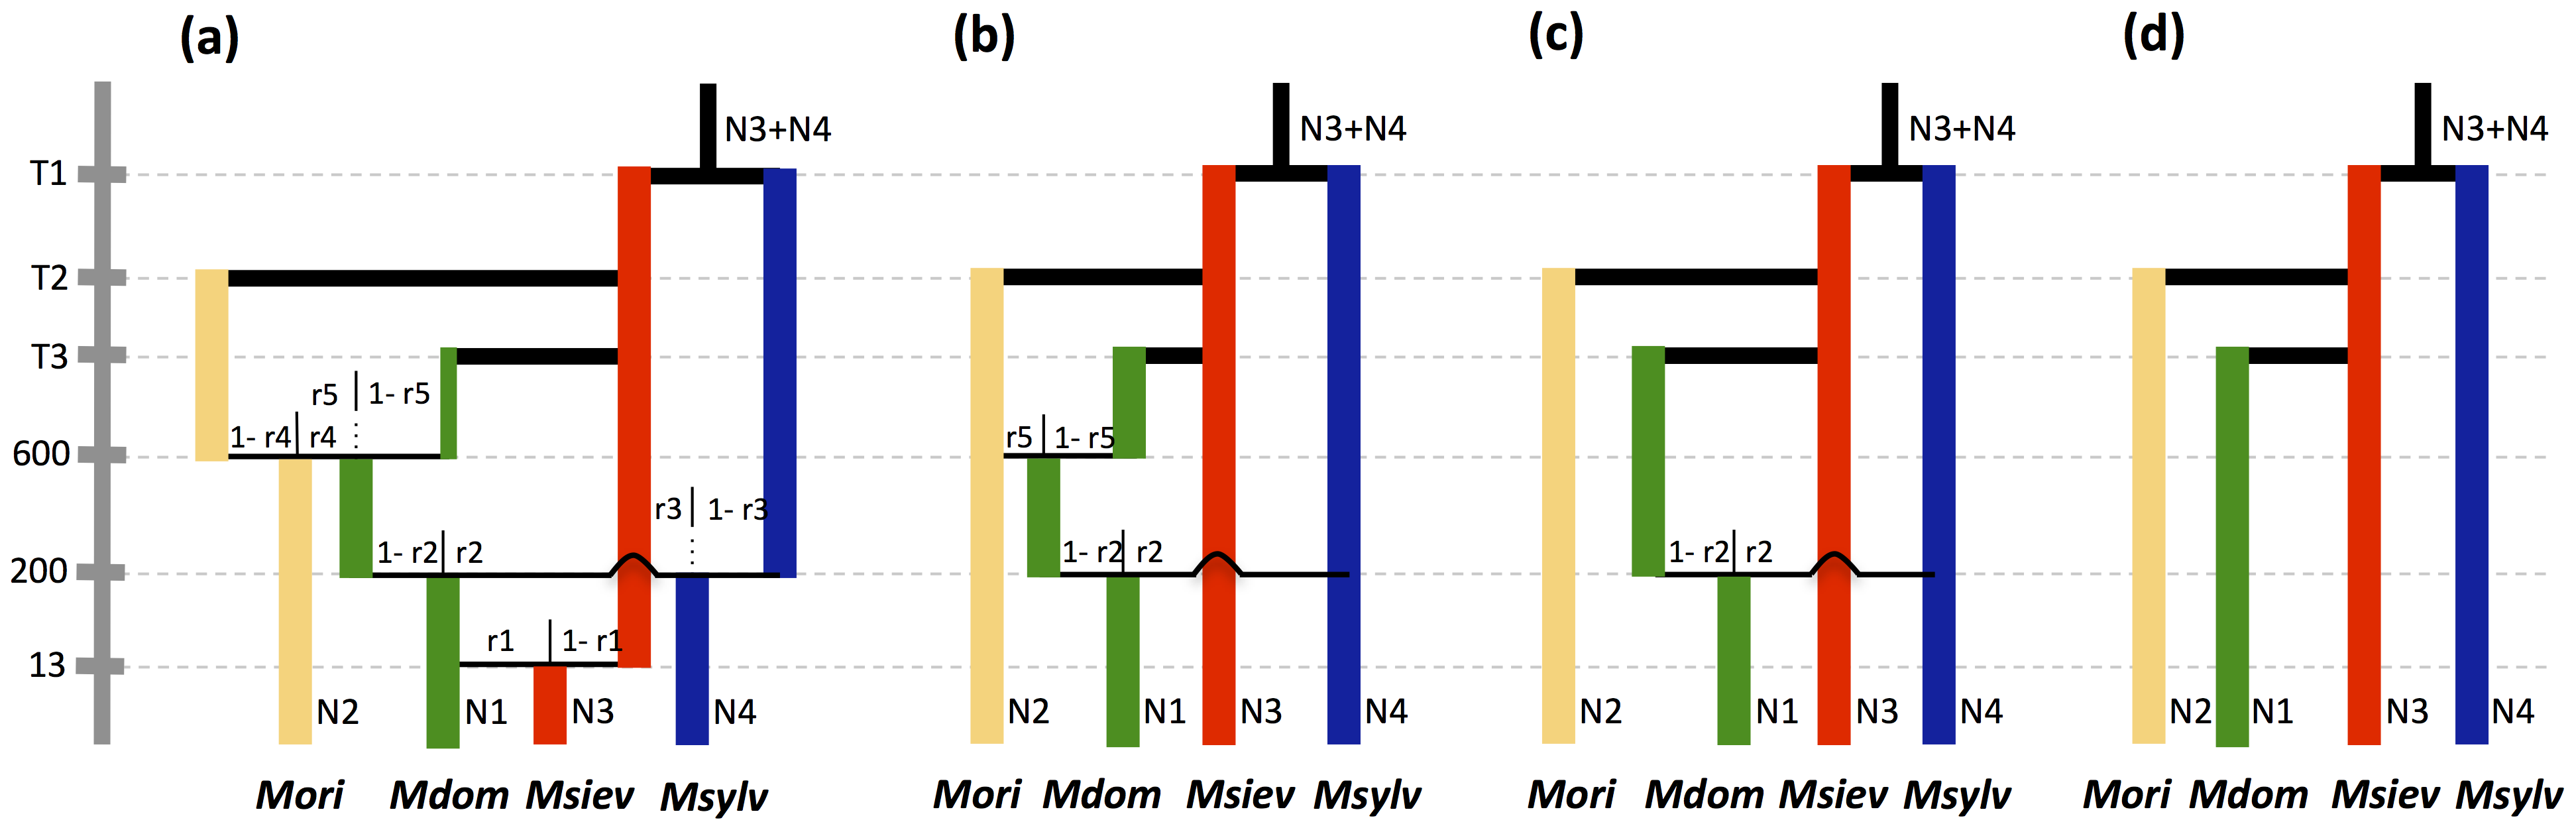 Admixture models compared in approximate Bayesian computations.